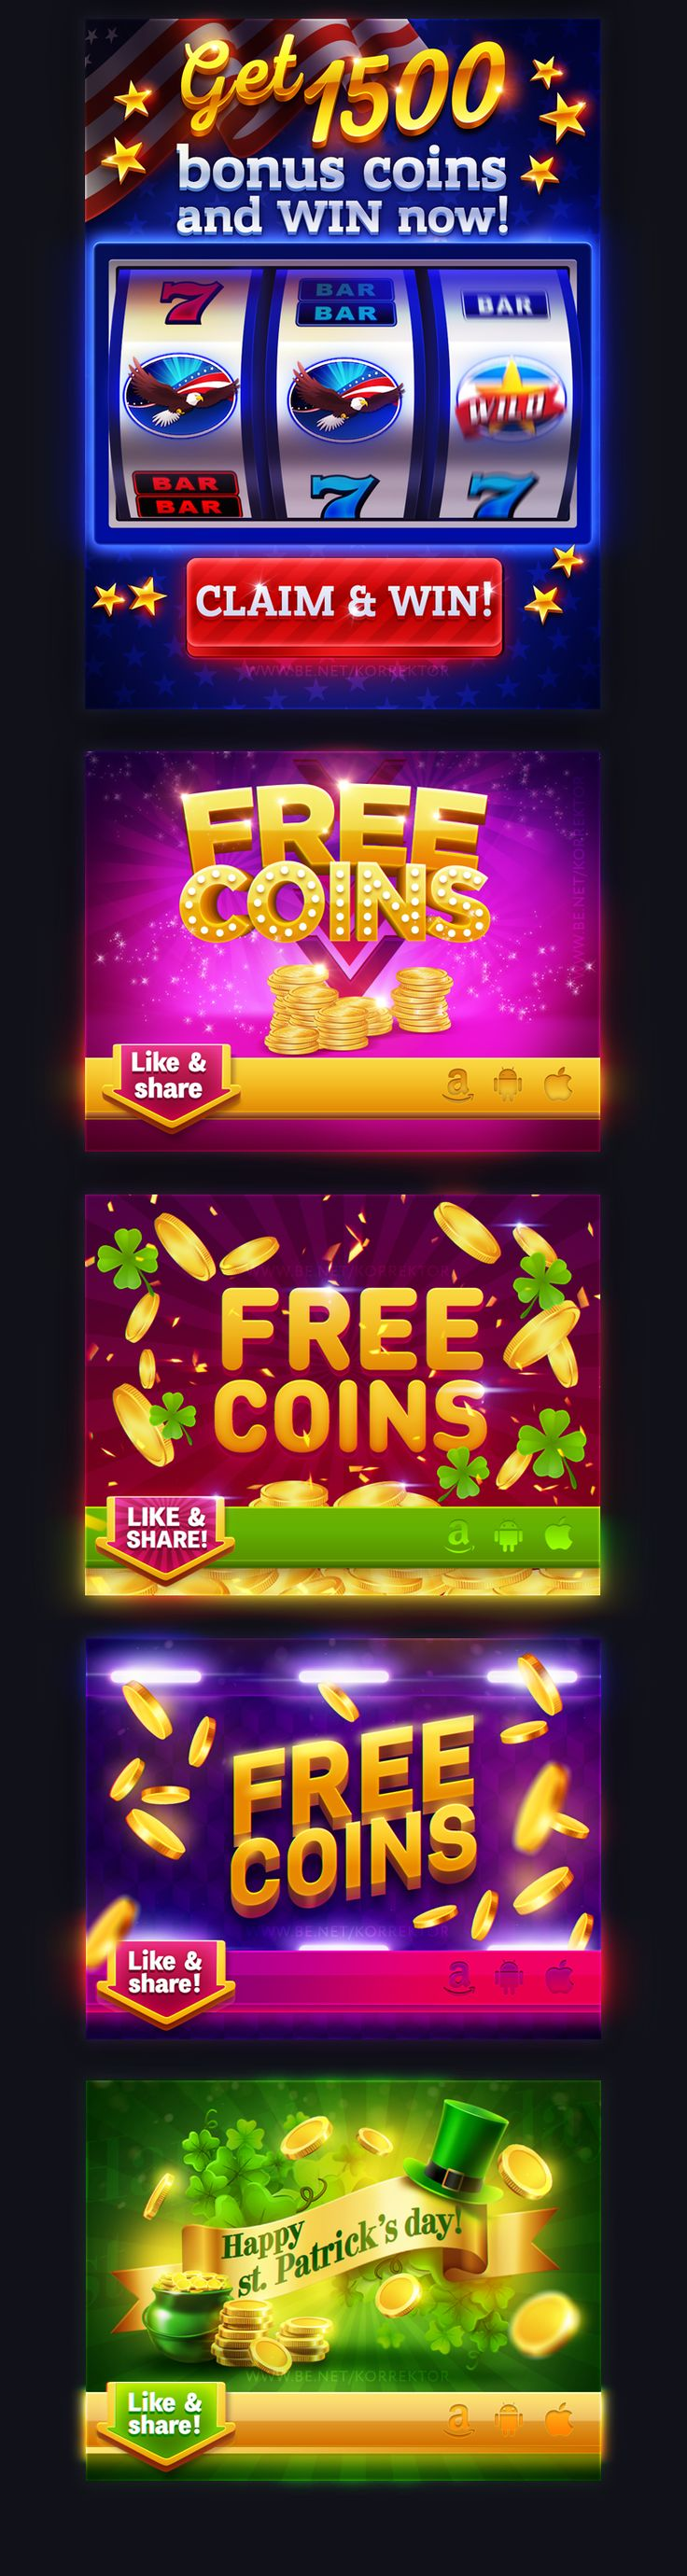 Juicy slots banners collection on Behance